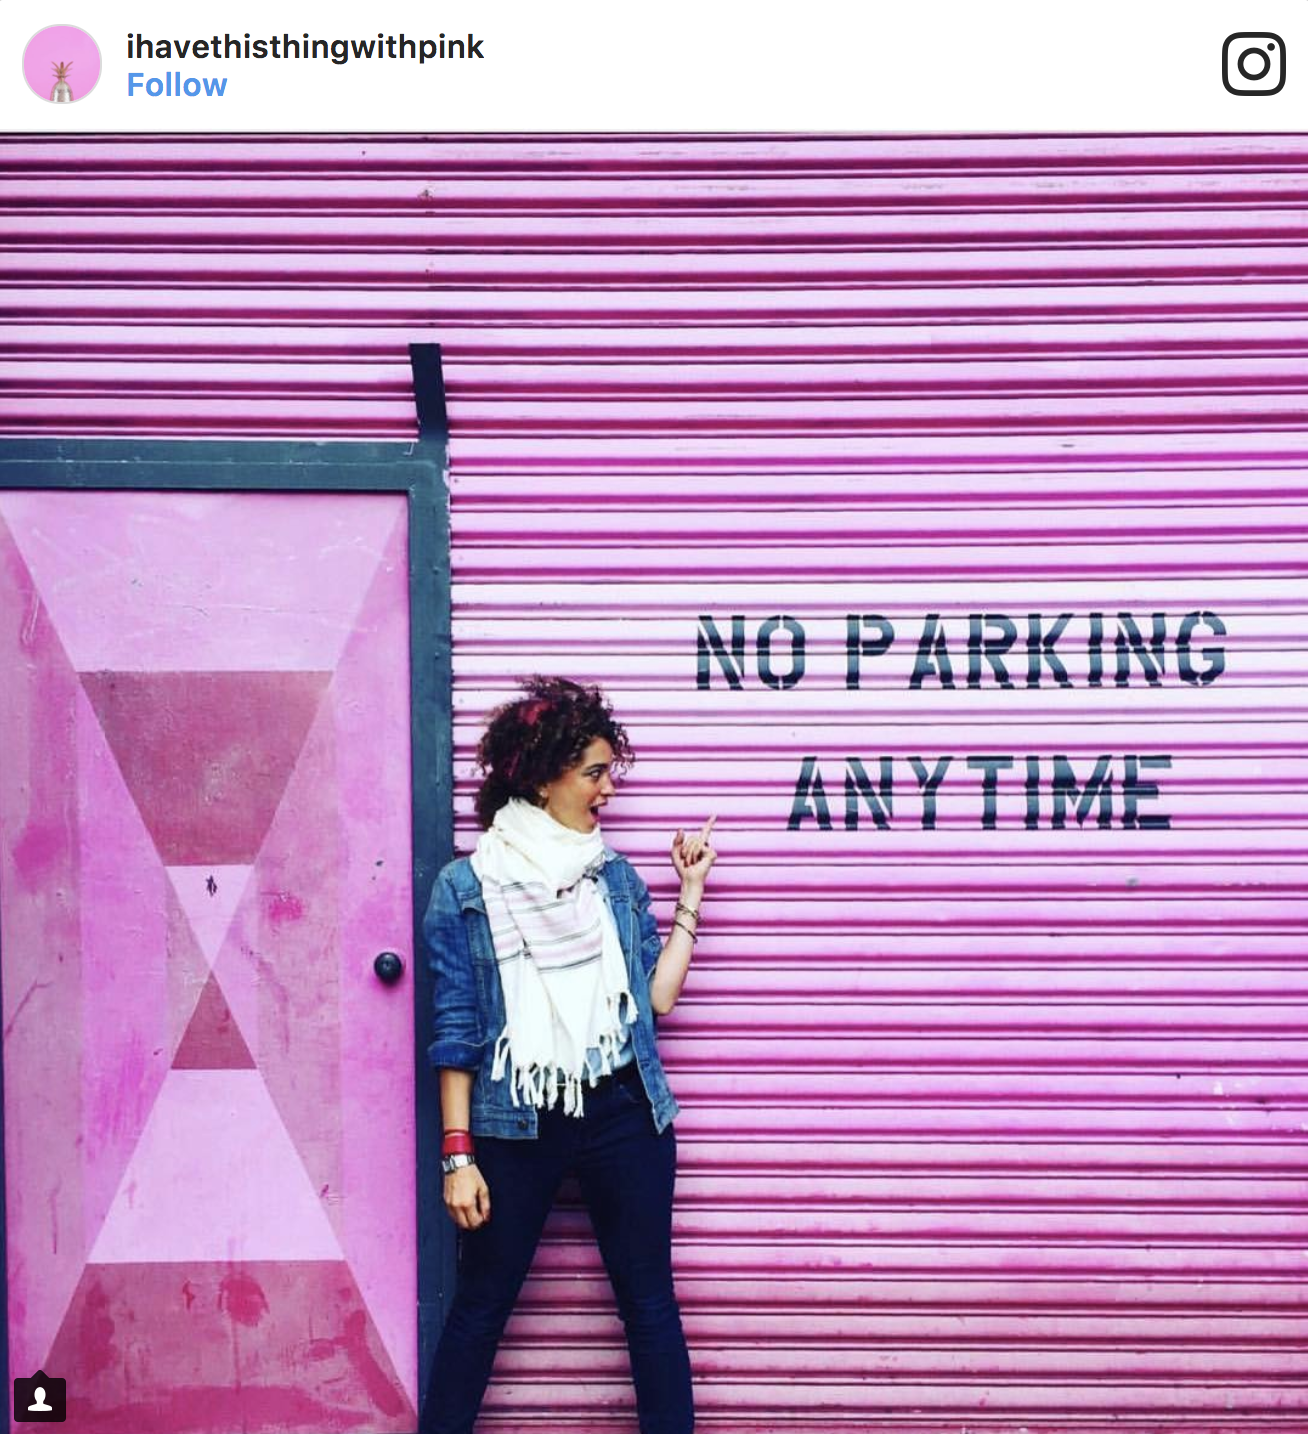 Specific Ways To Add More Branding To Your Instagram